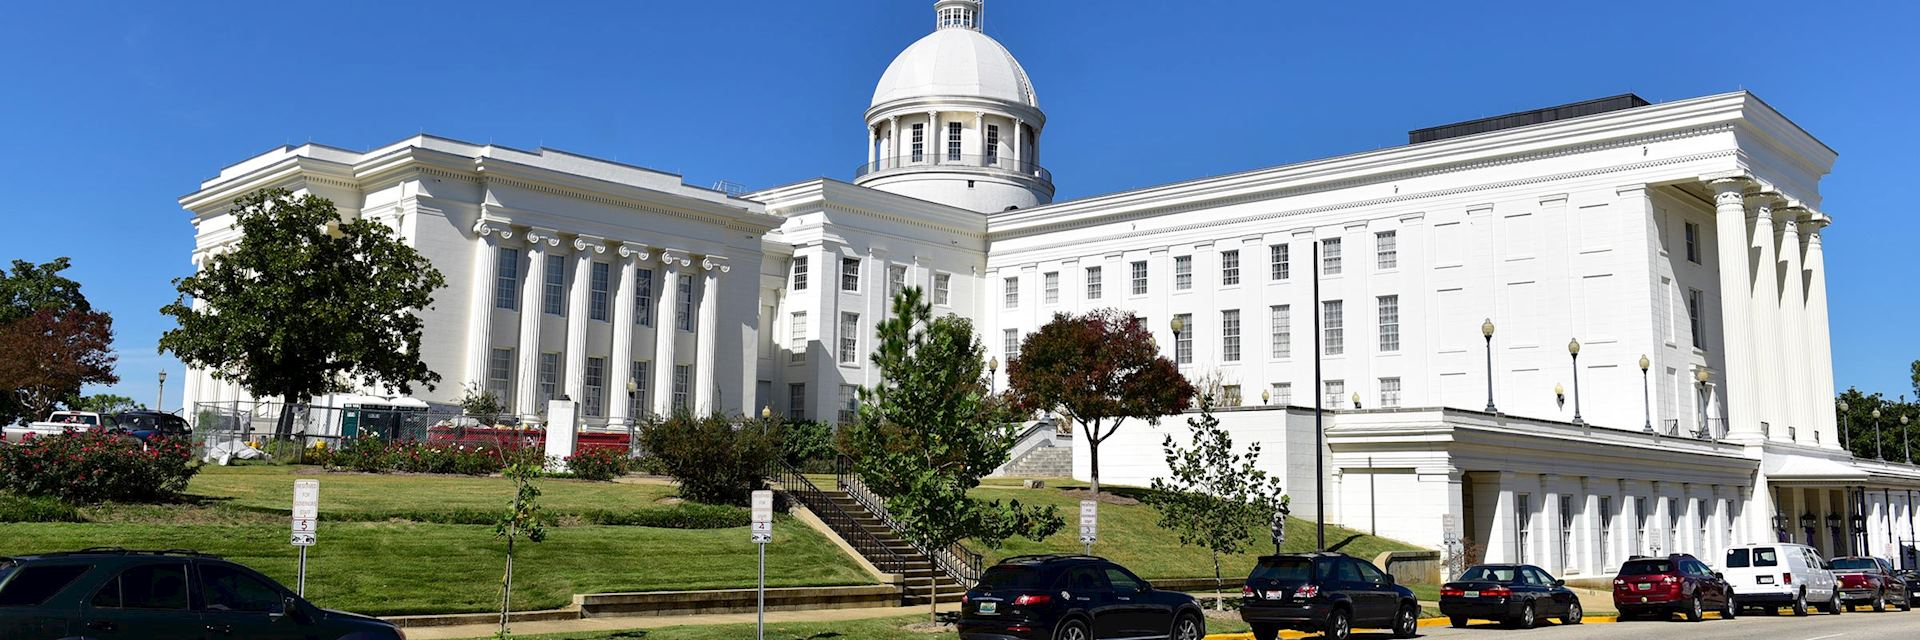 Alabama State Capitol building, Montgomery, USA